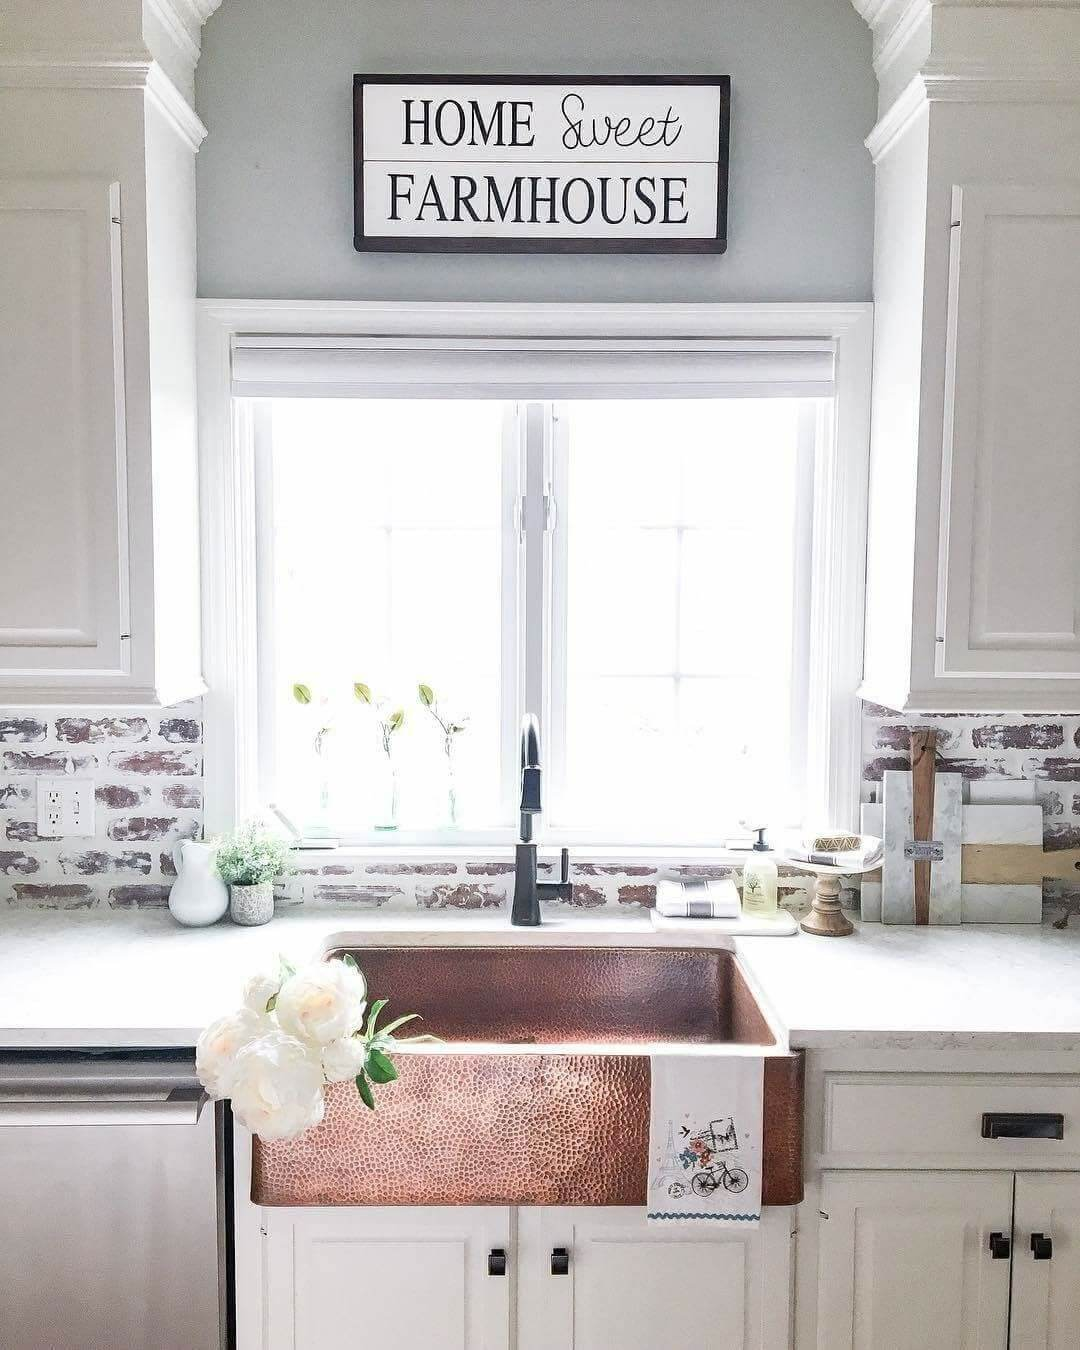 Farmhouse Kitchen Cabinets: 26 Farmhouse Kitchen Sink Ideas And Designs For 2020